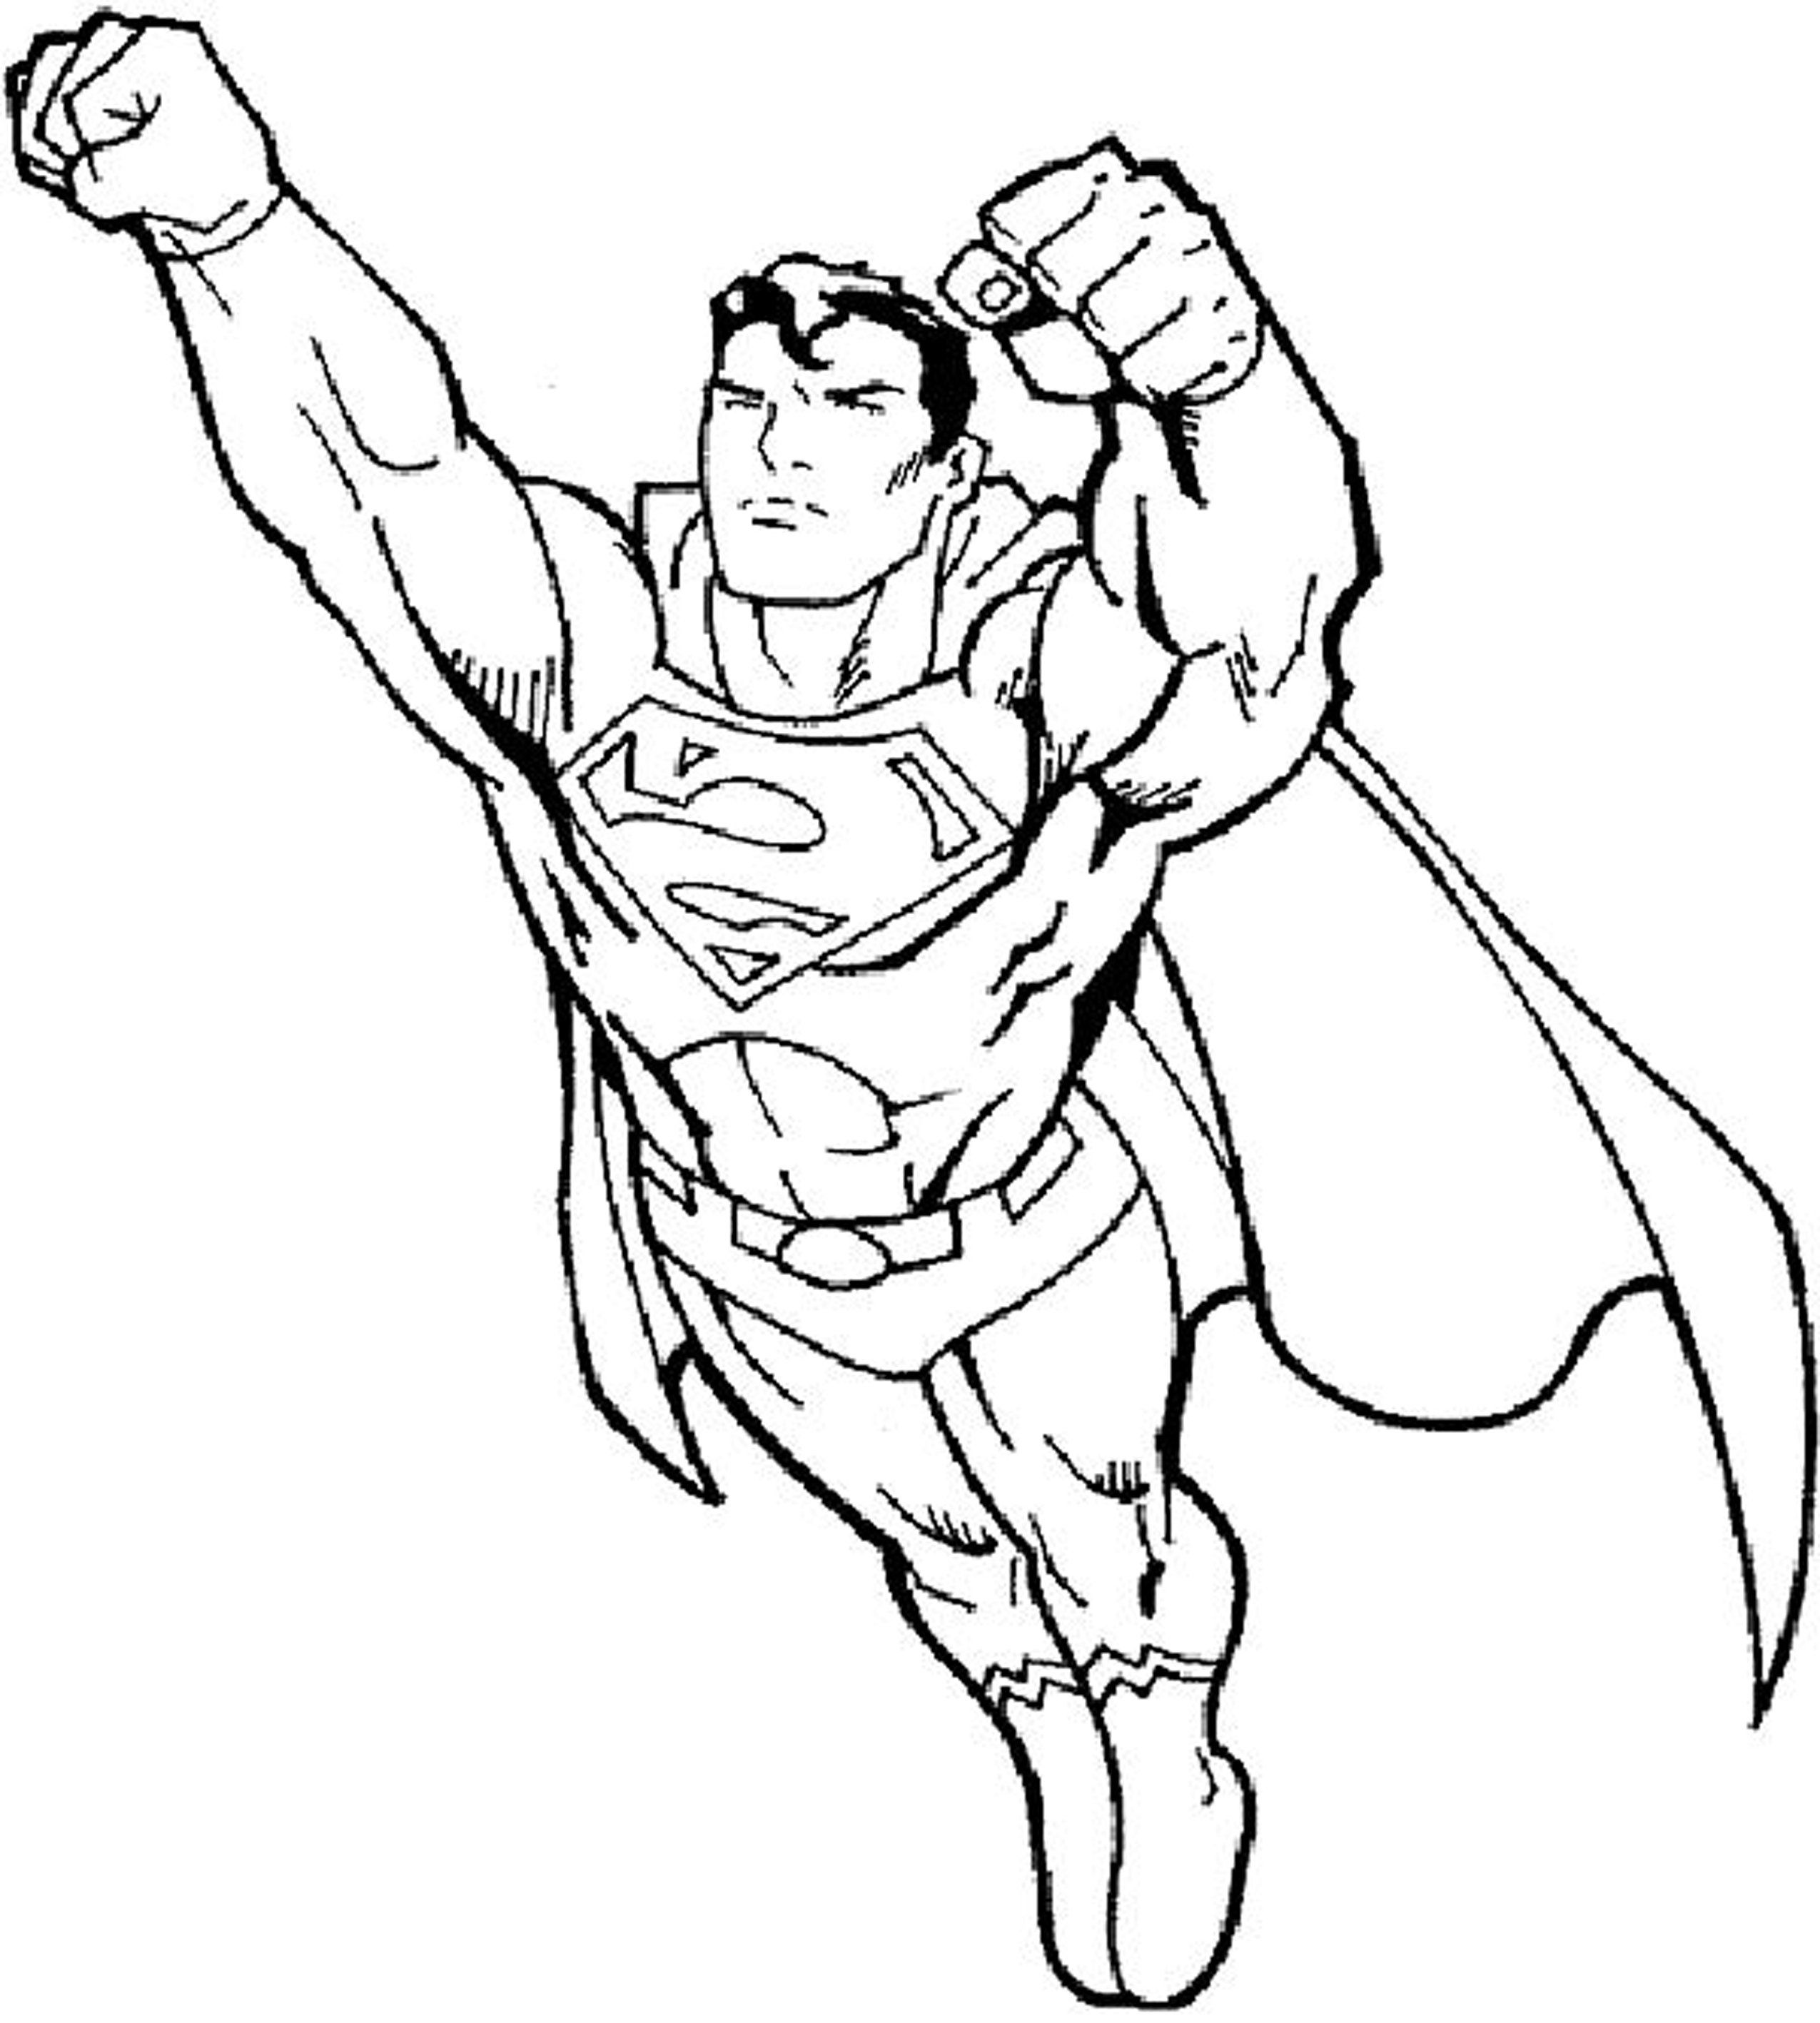 coloring pages printable for boys - free coloring pages for boys superman clips pinterest